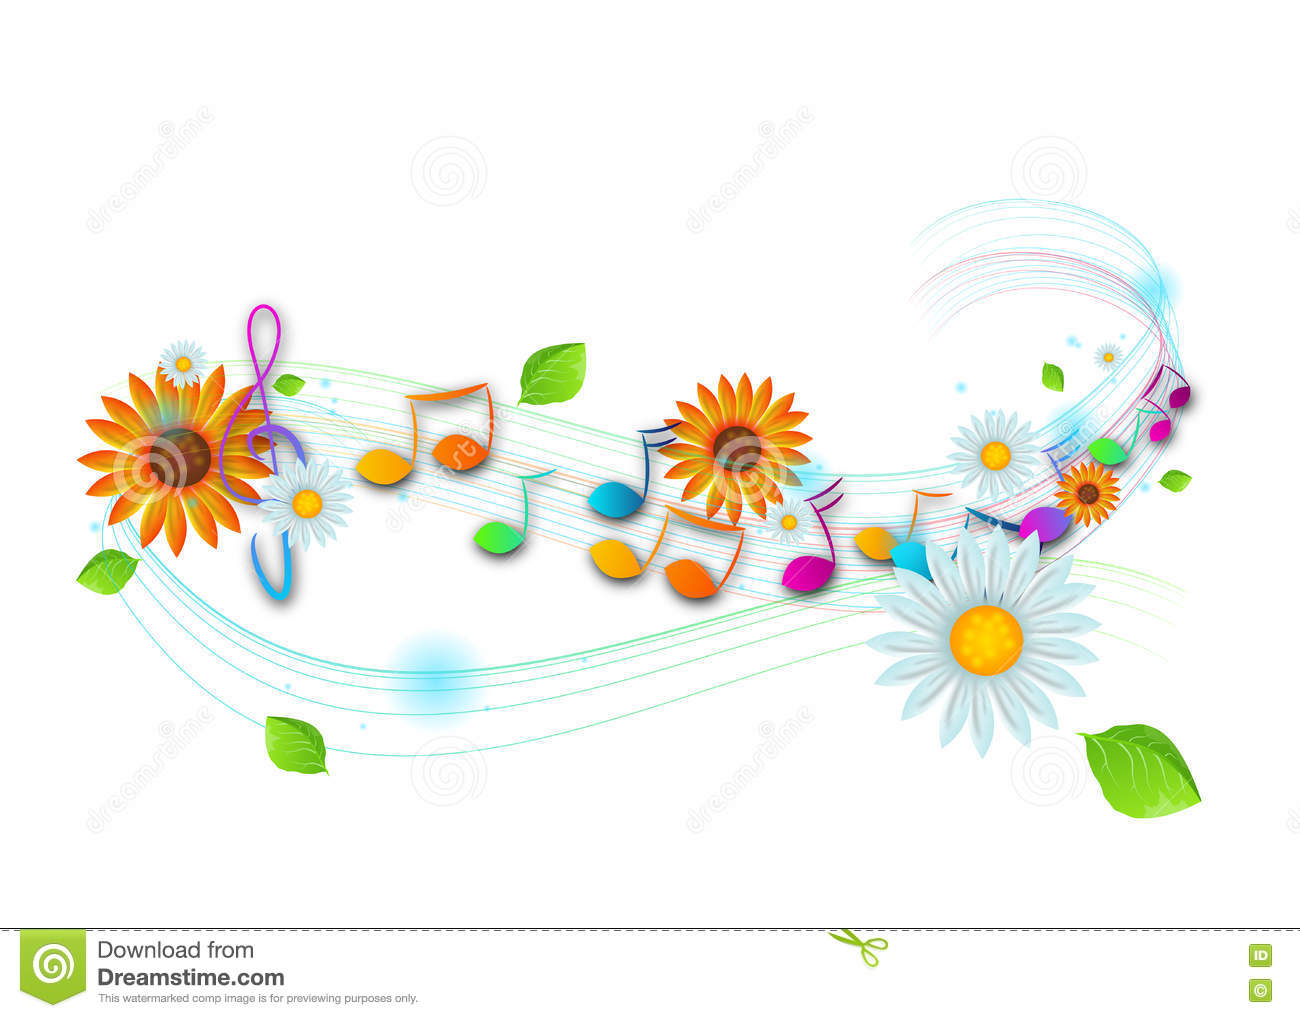 music notes backgrounds floral - photo #25